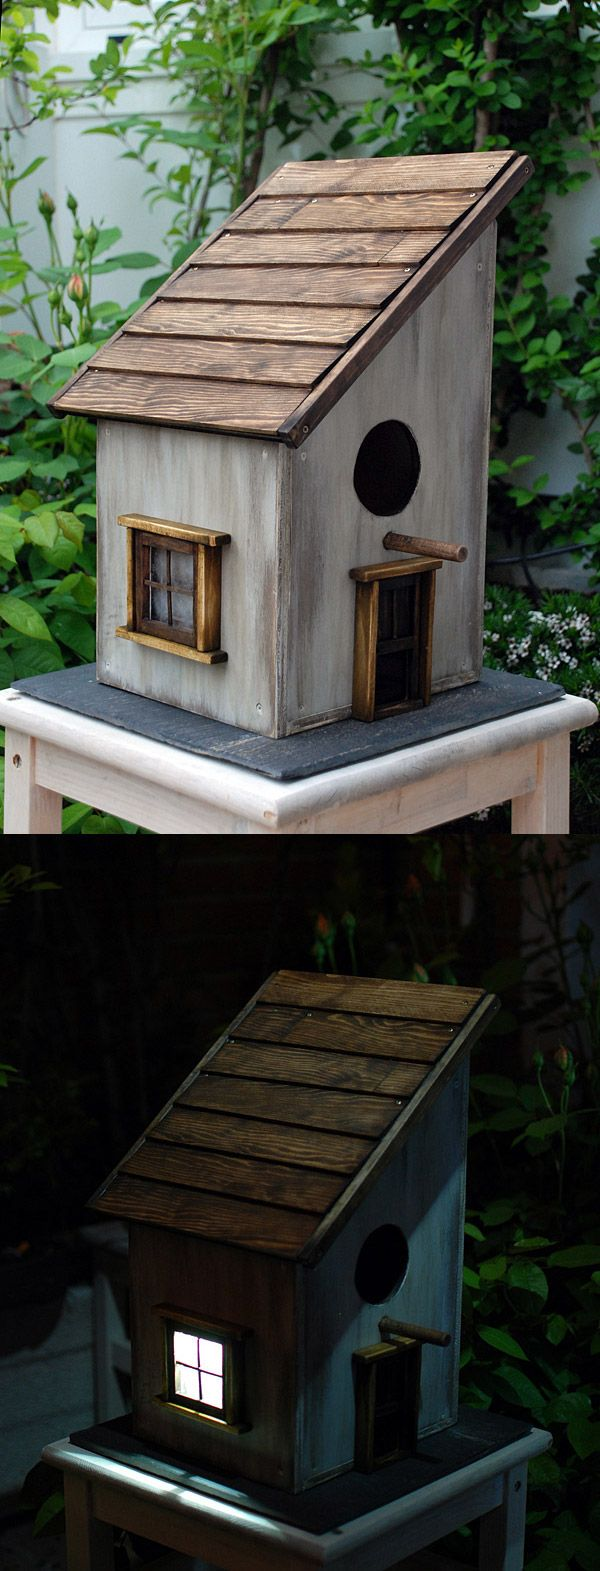 17 best ideas about bird houses painted on pinterest birdhouses birdhouse ideas and painted - Casitas para pajaros jardin ...